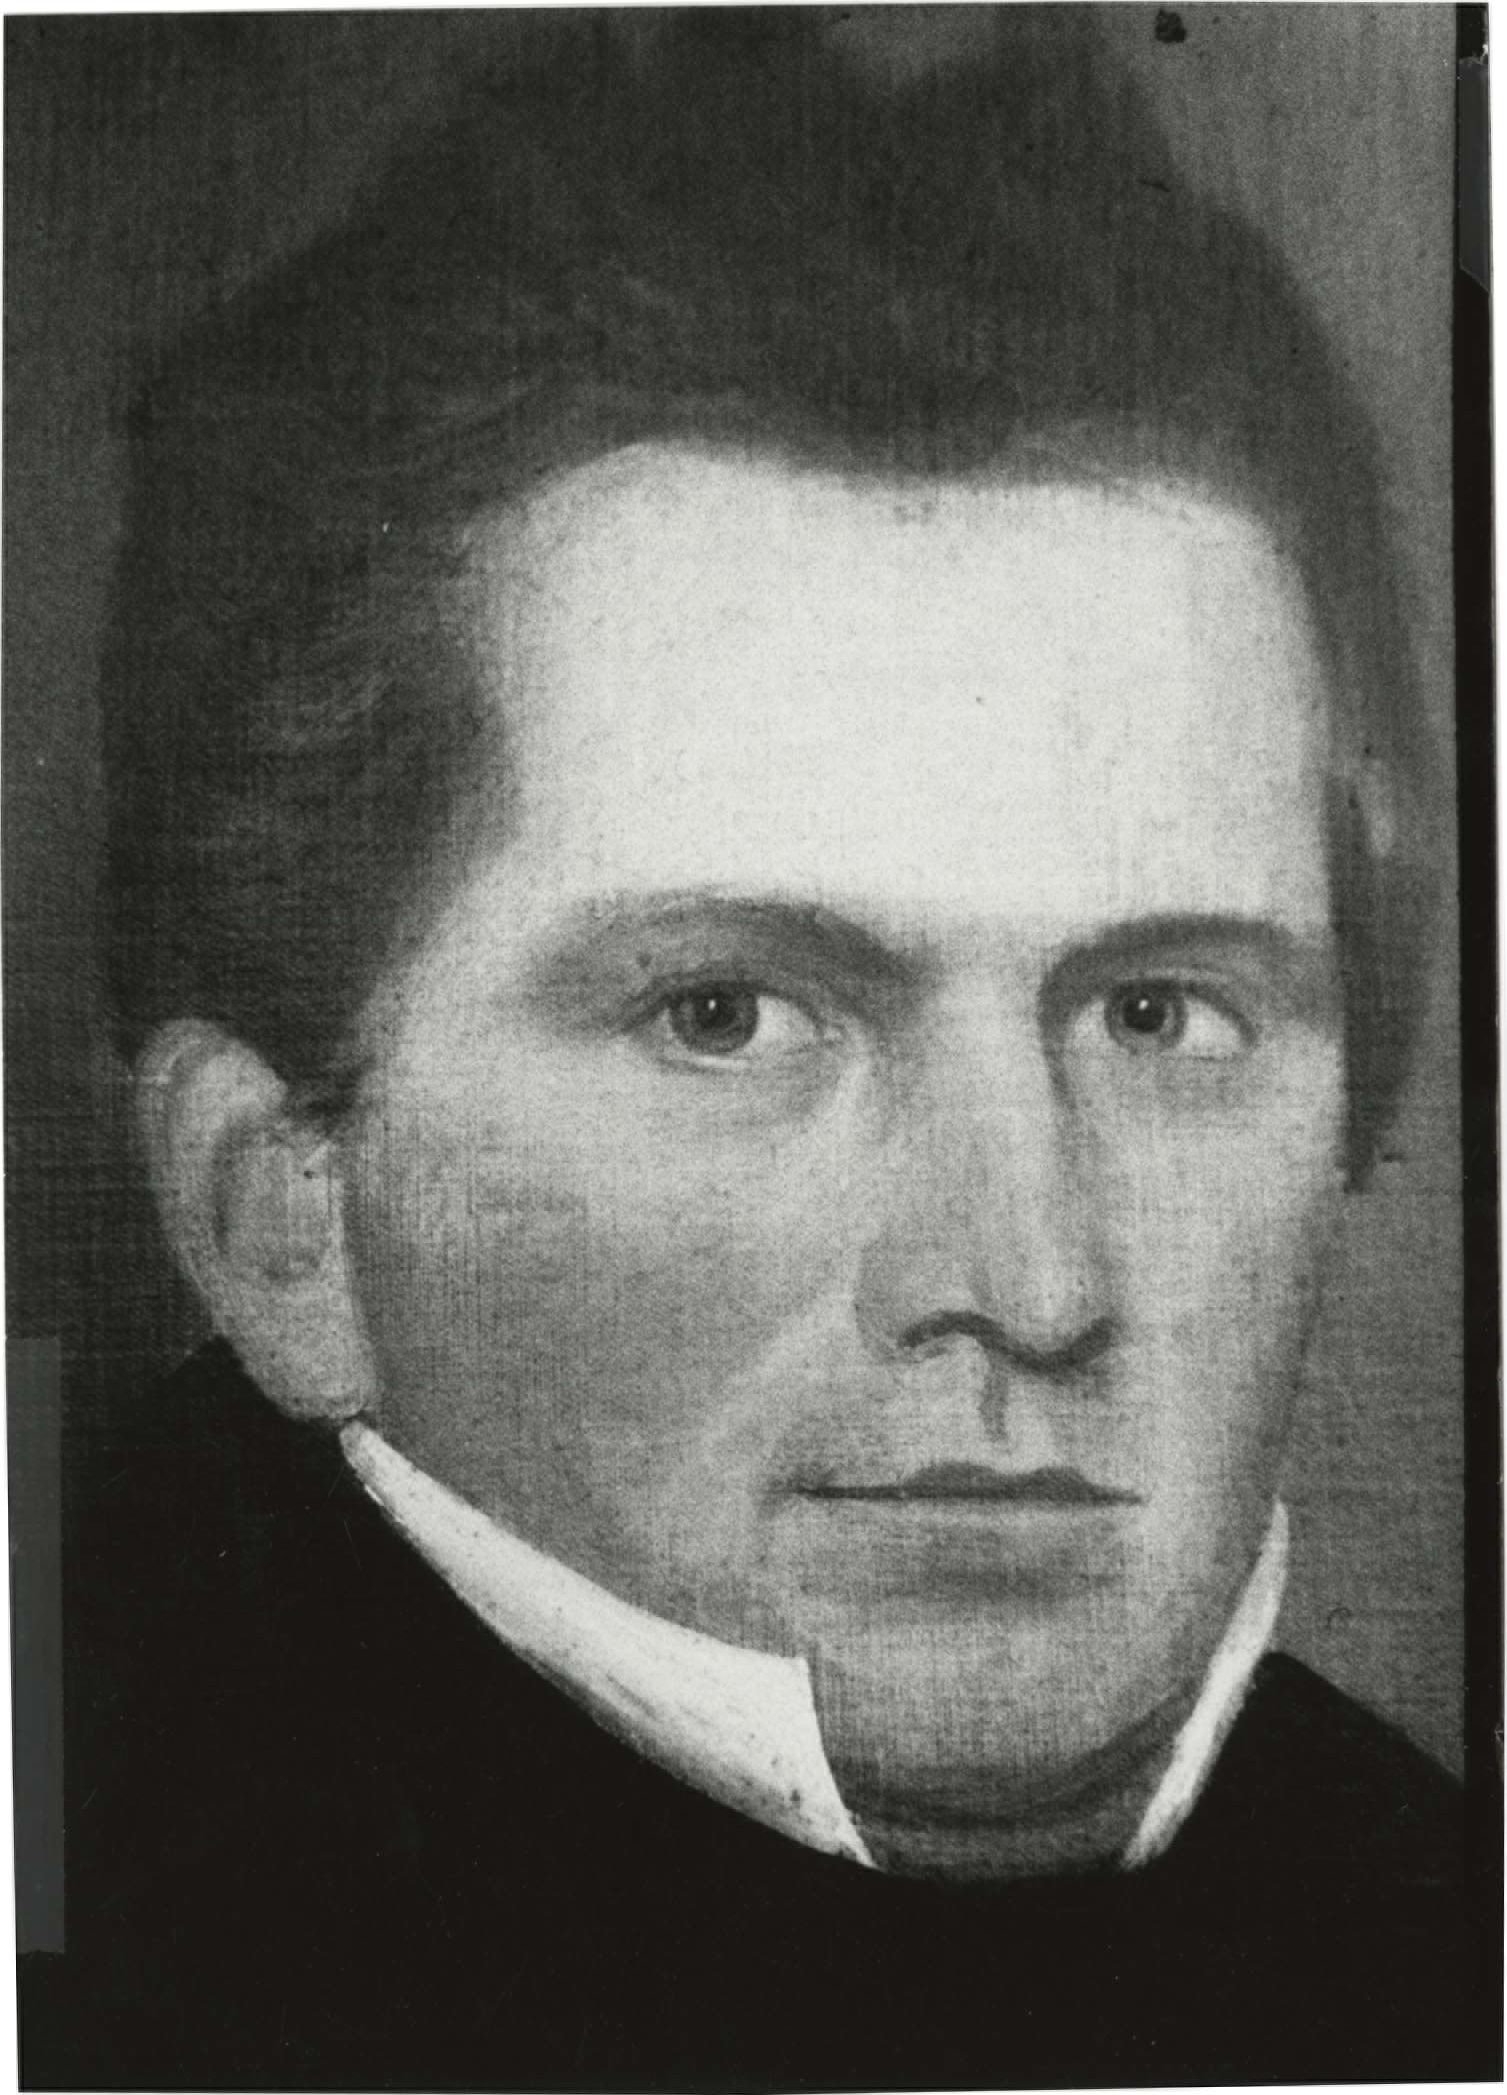 black and white image of head of James Kent